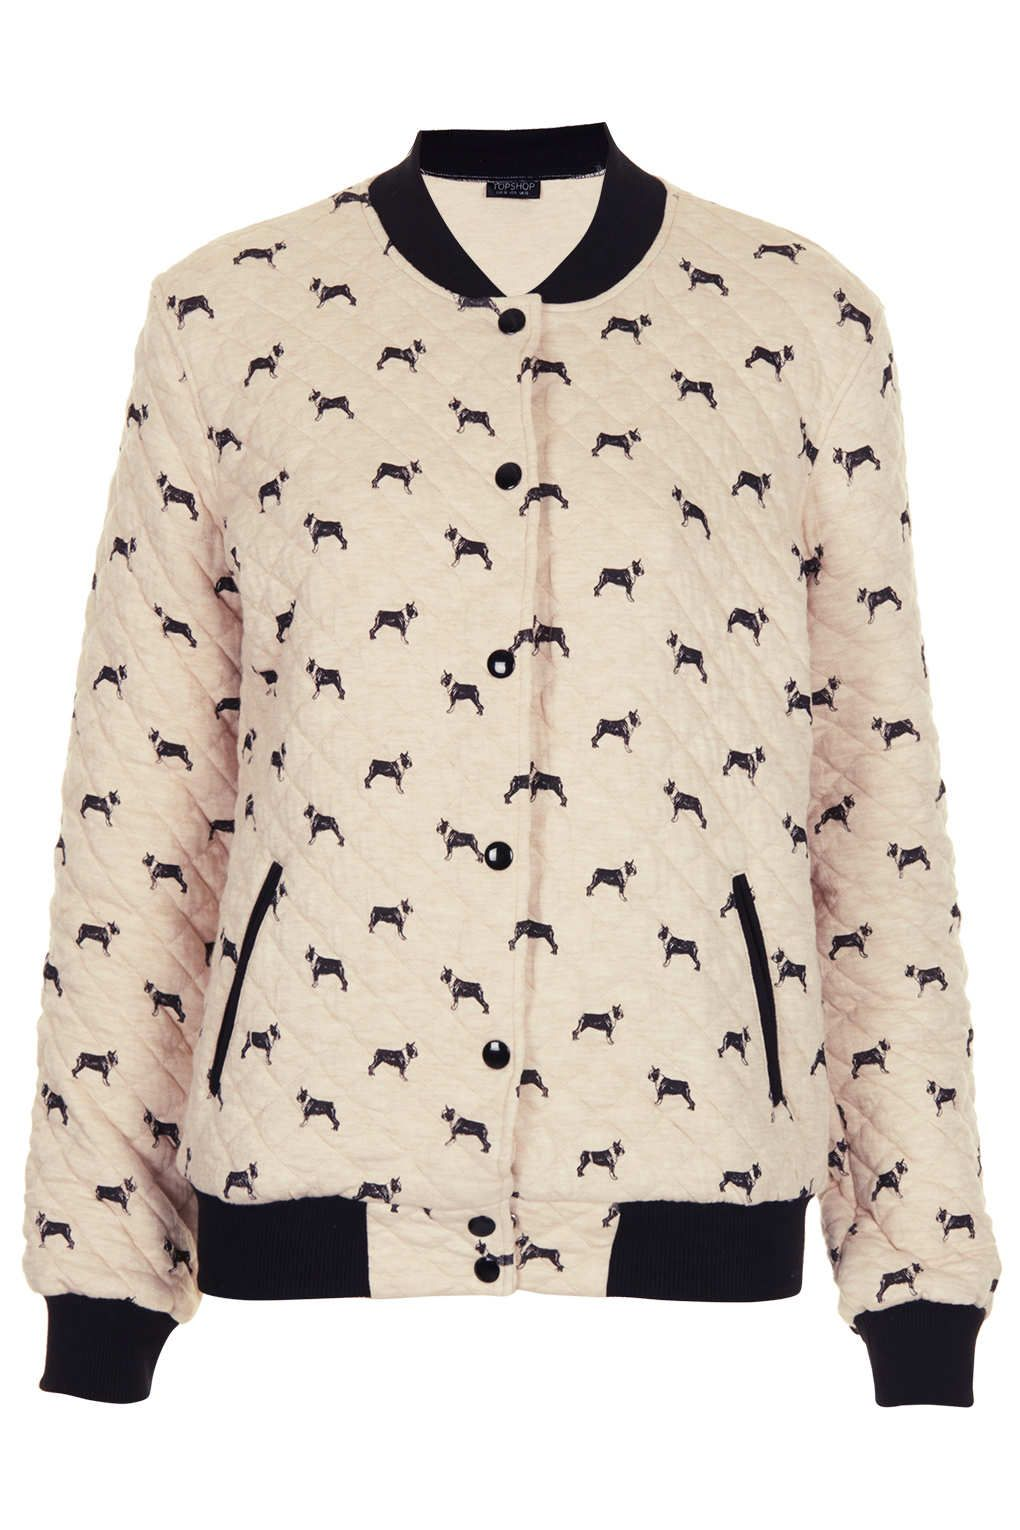 A Beautiful Bomber Jacket with #bostonterrier pattern from ...